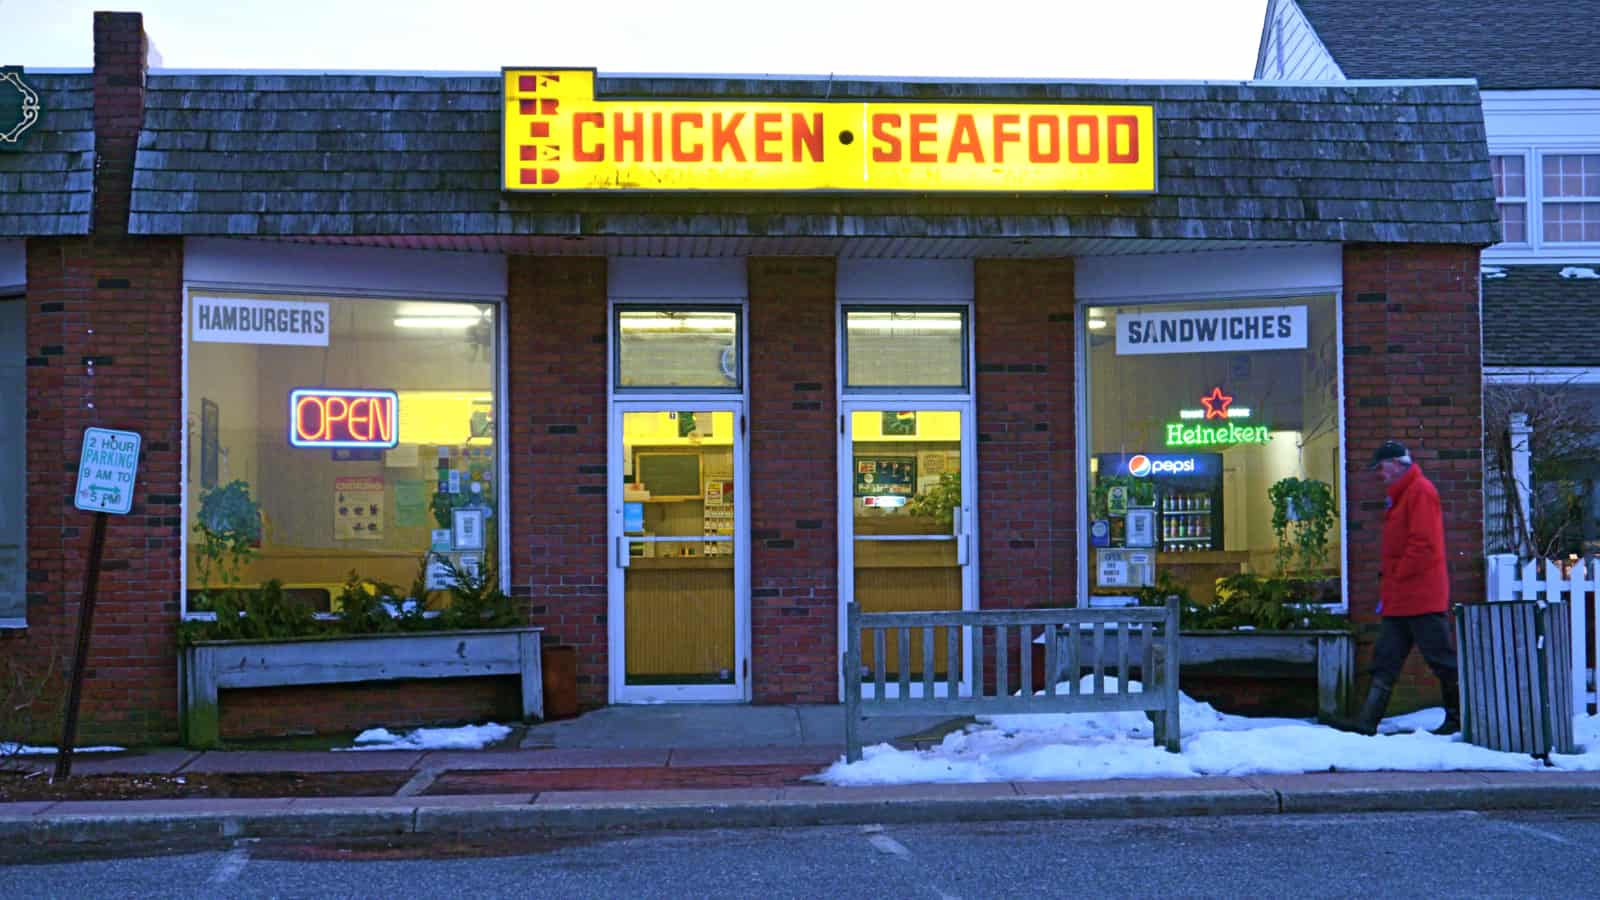 Chicken  Seafood, The Plaza, February 2013, Montauk NY, photo by Sailing Montauk